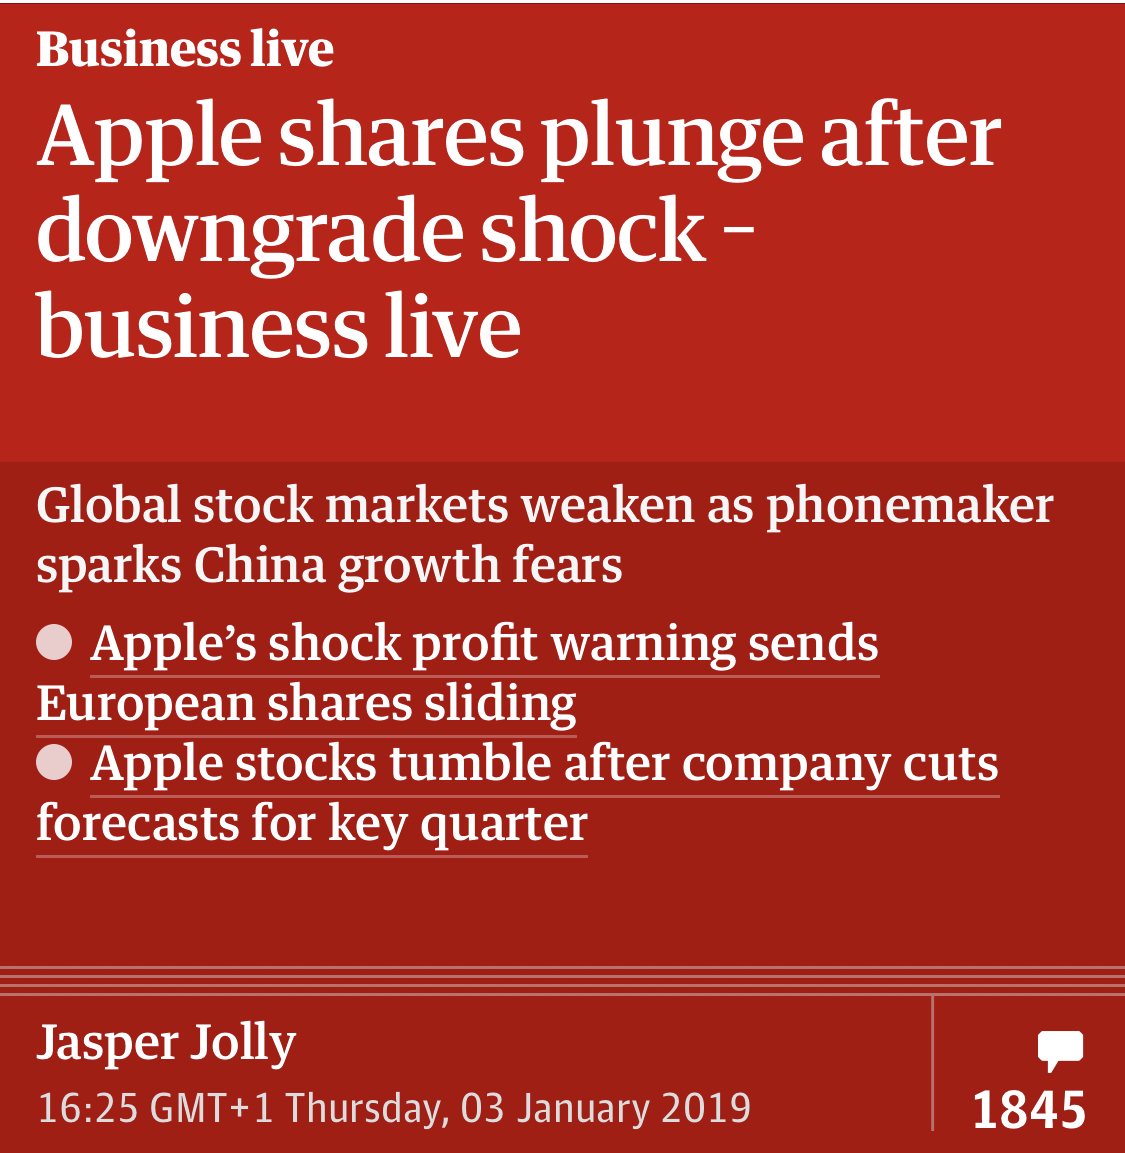 Stock news is almost never breaking news